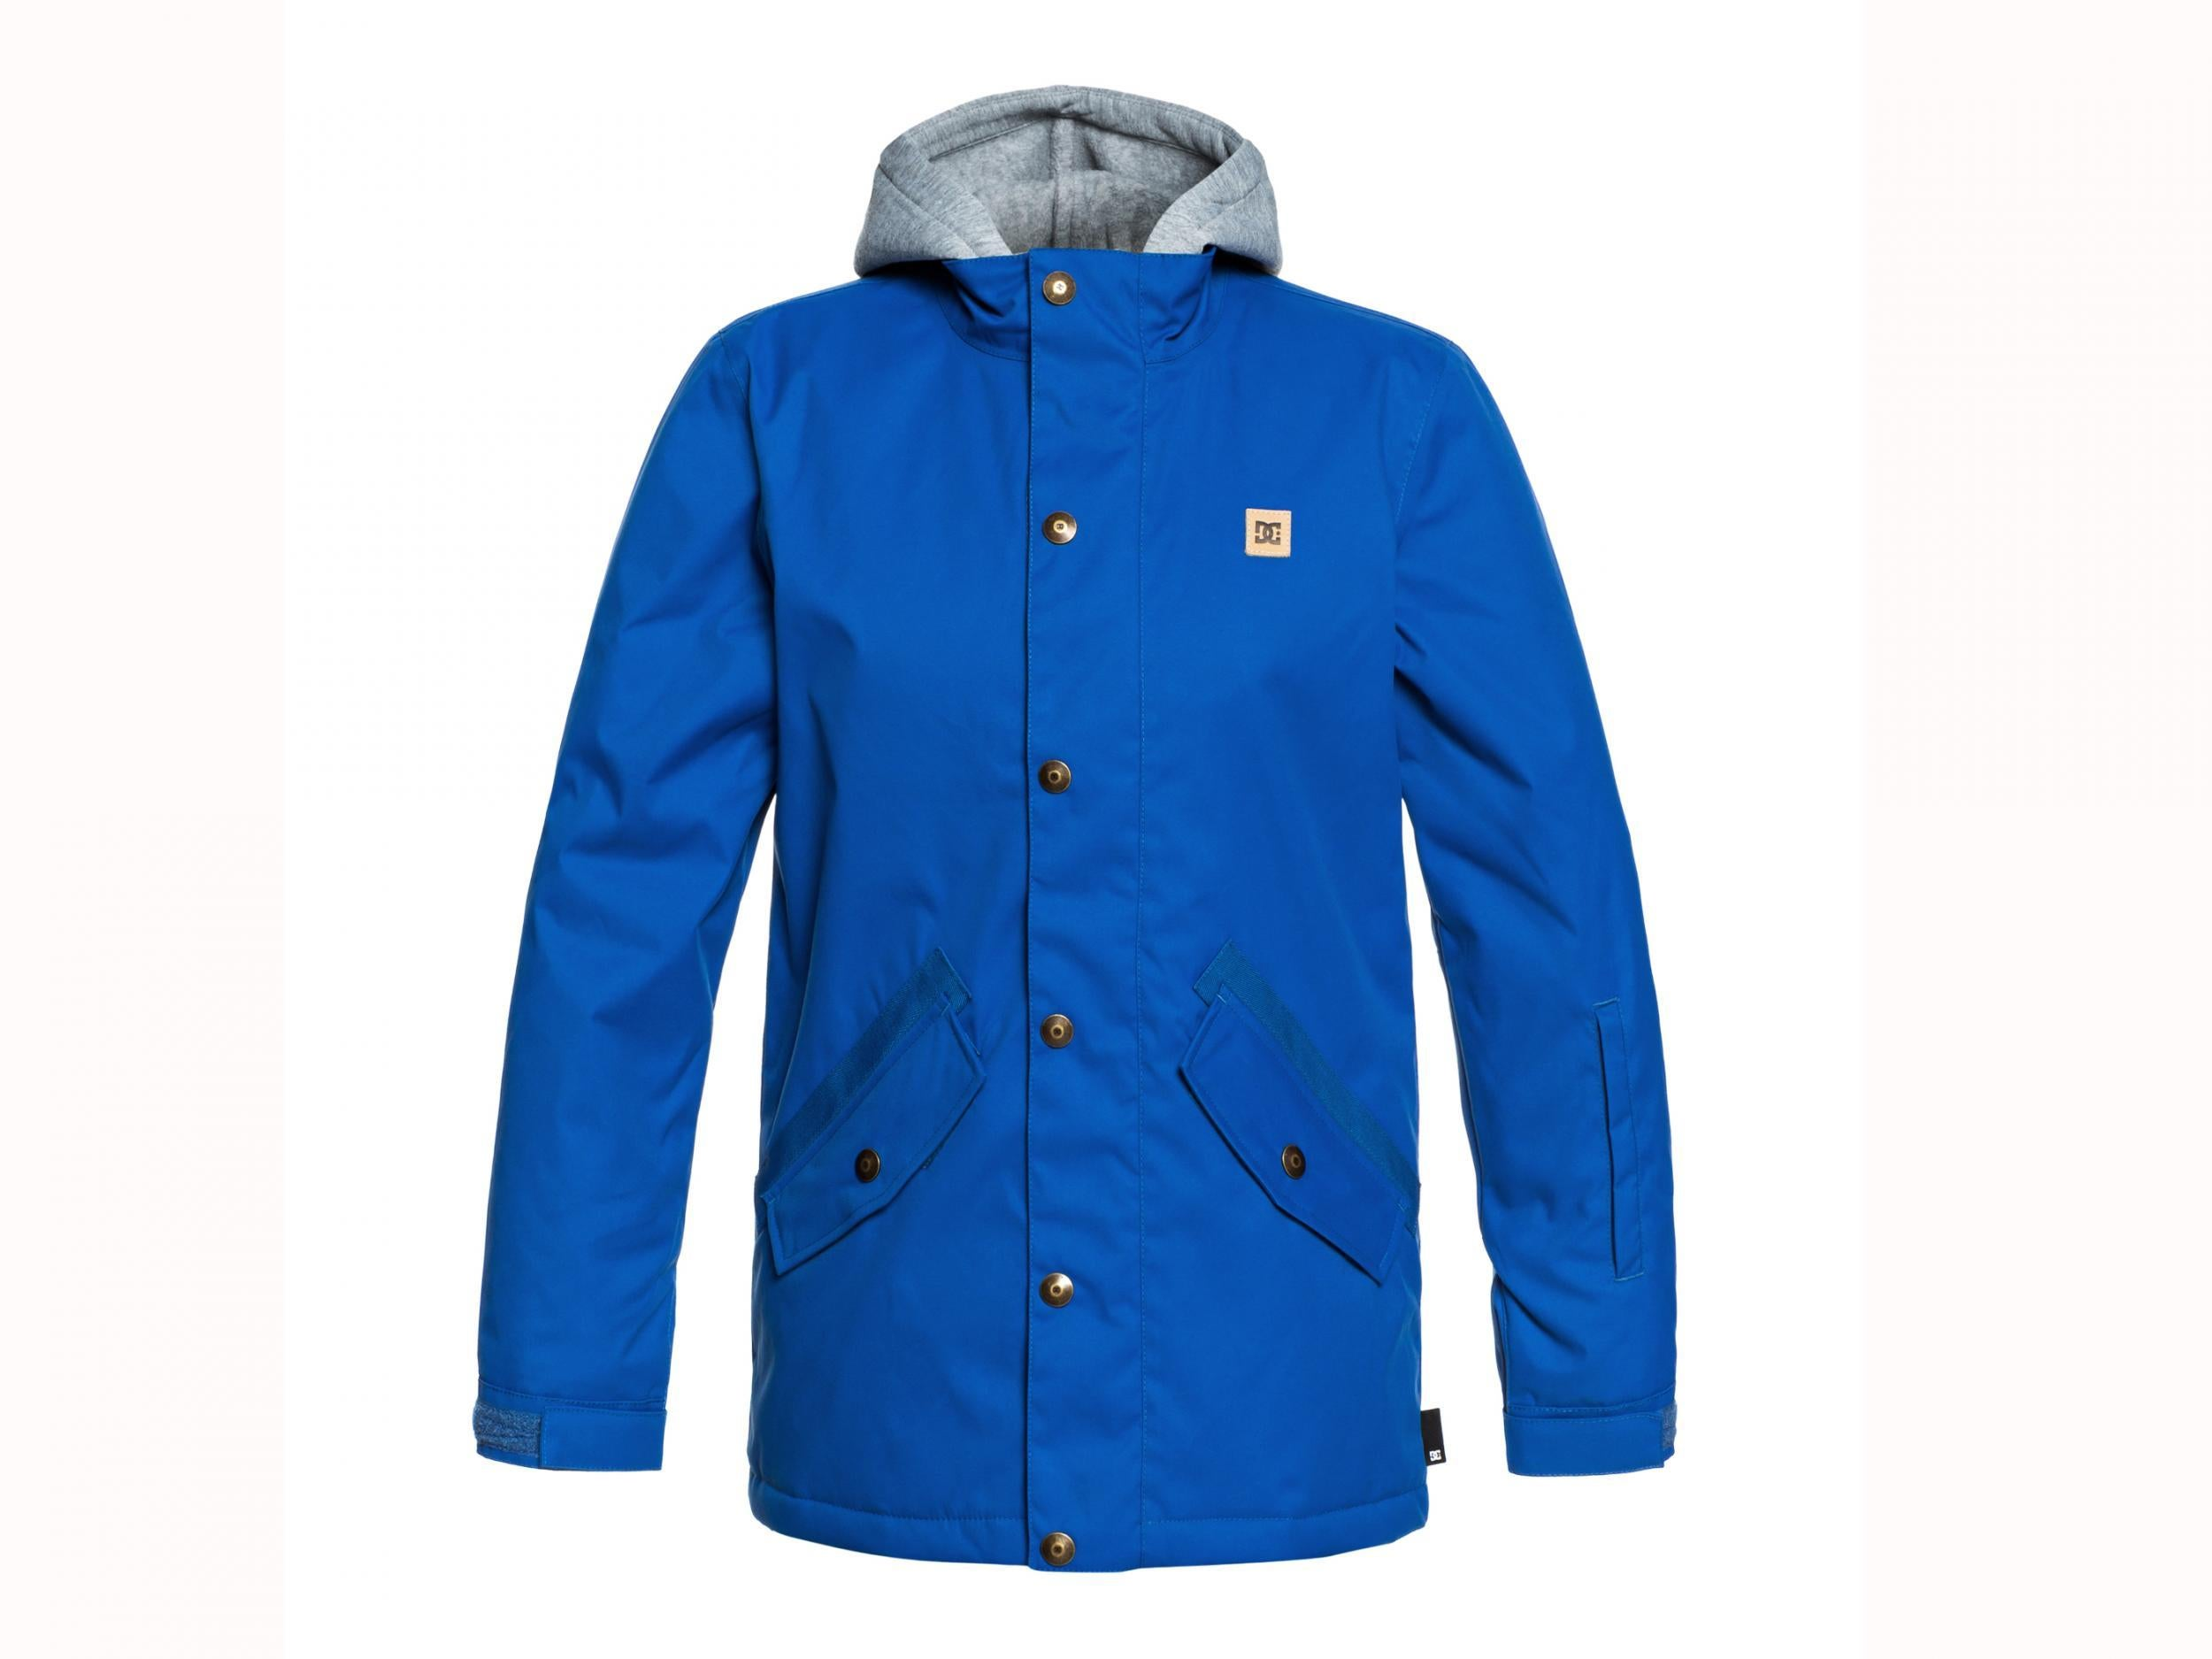 What clothes are the top. Practical advice when choosing womens and childrens outerwear